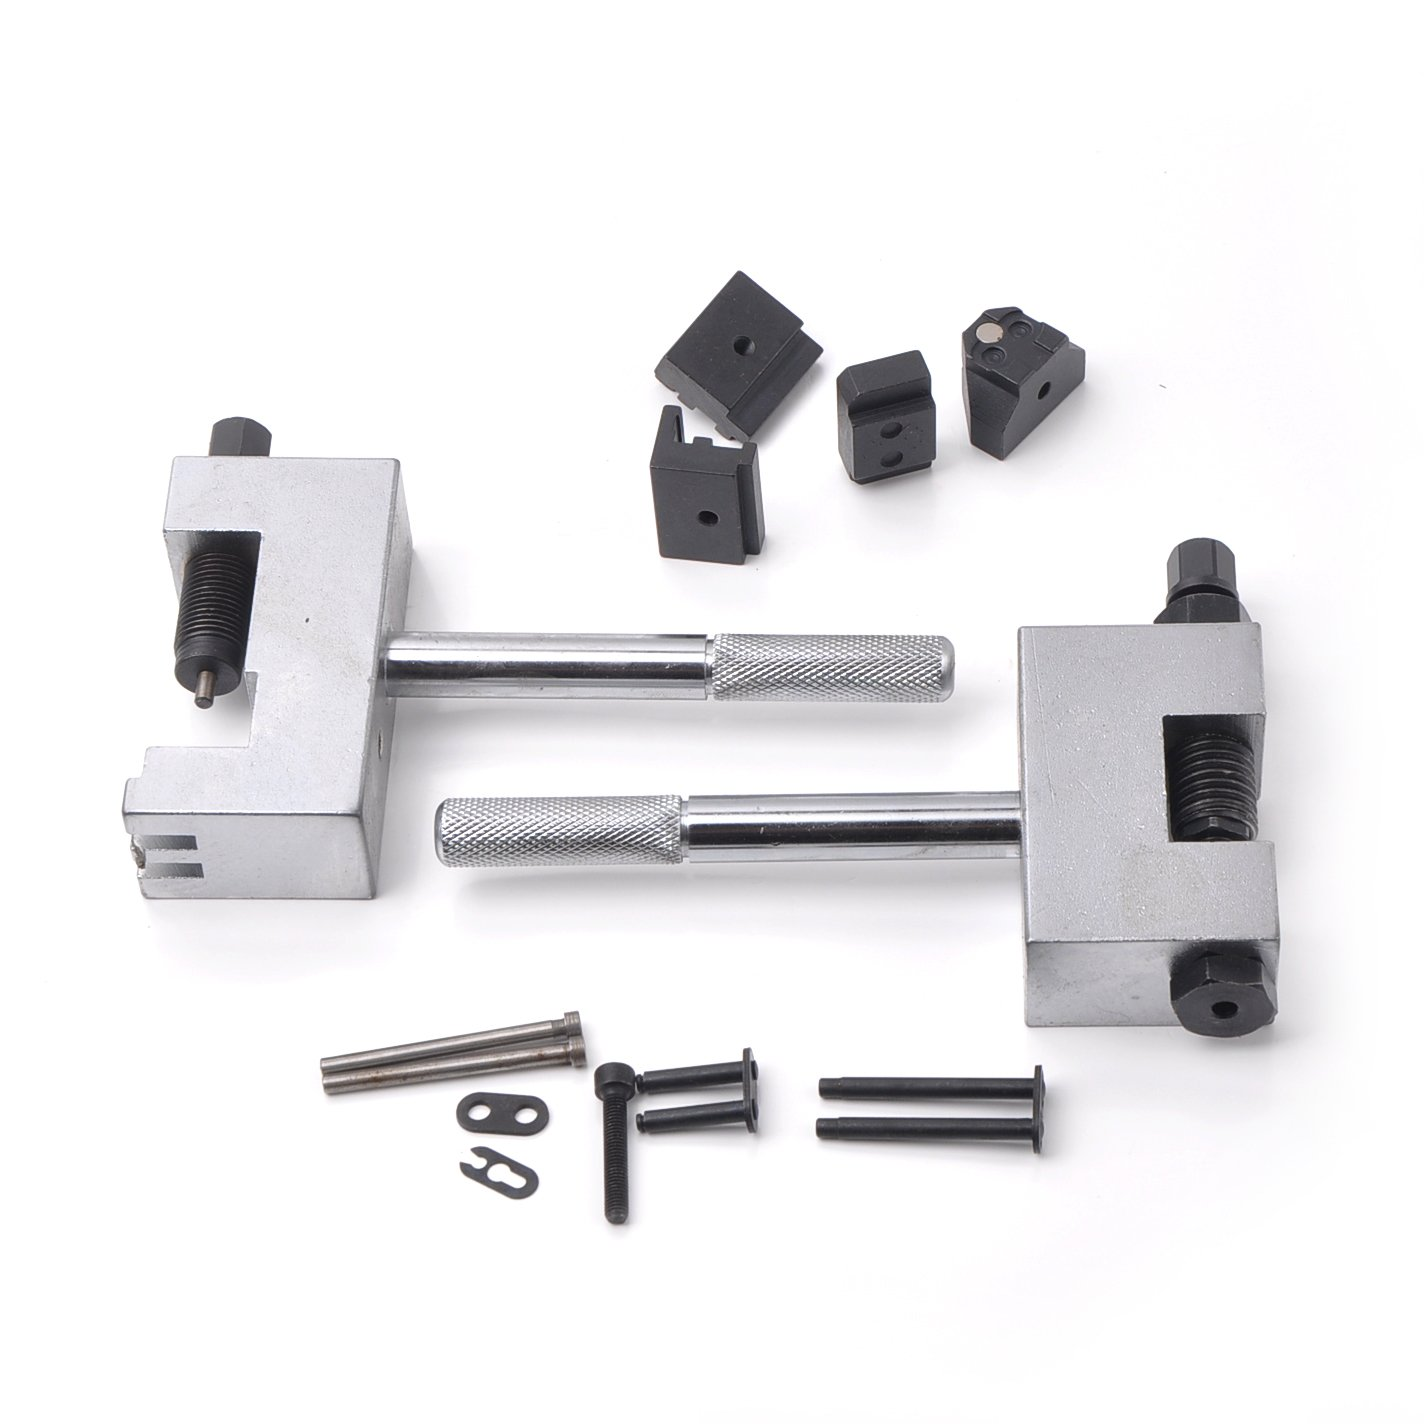 Compatible for Timing Chain Change Vehicle Motor Niet Tools Rivets Riveted for Mercedes W203 W212